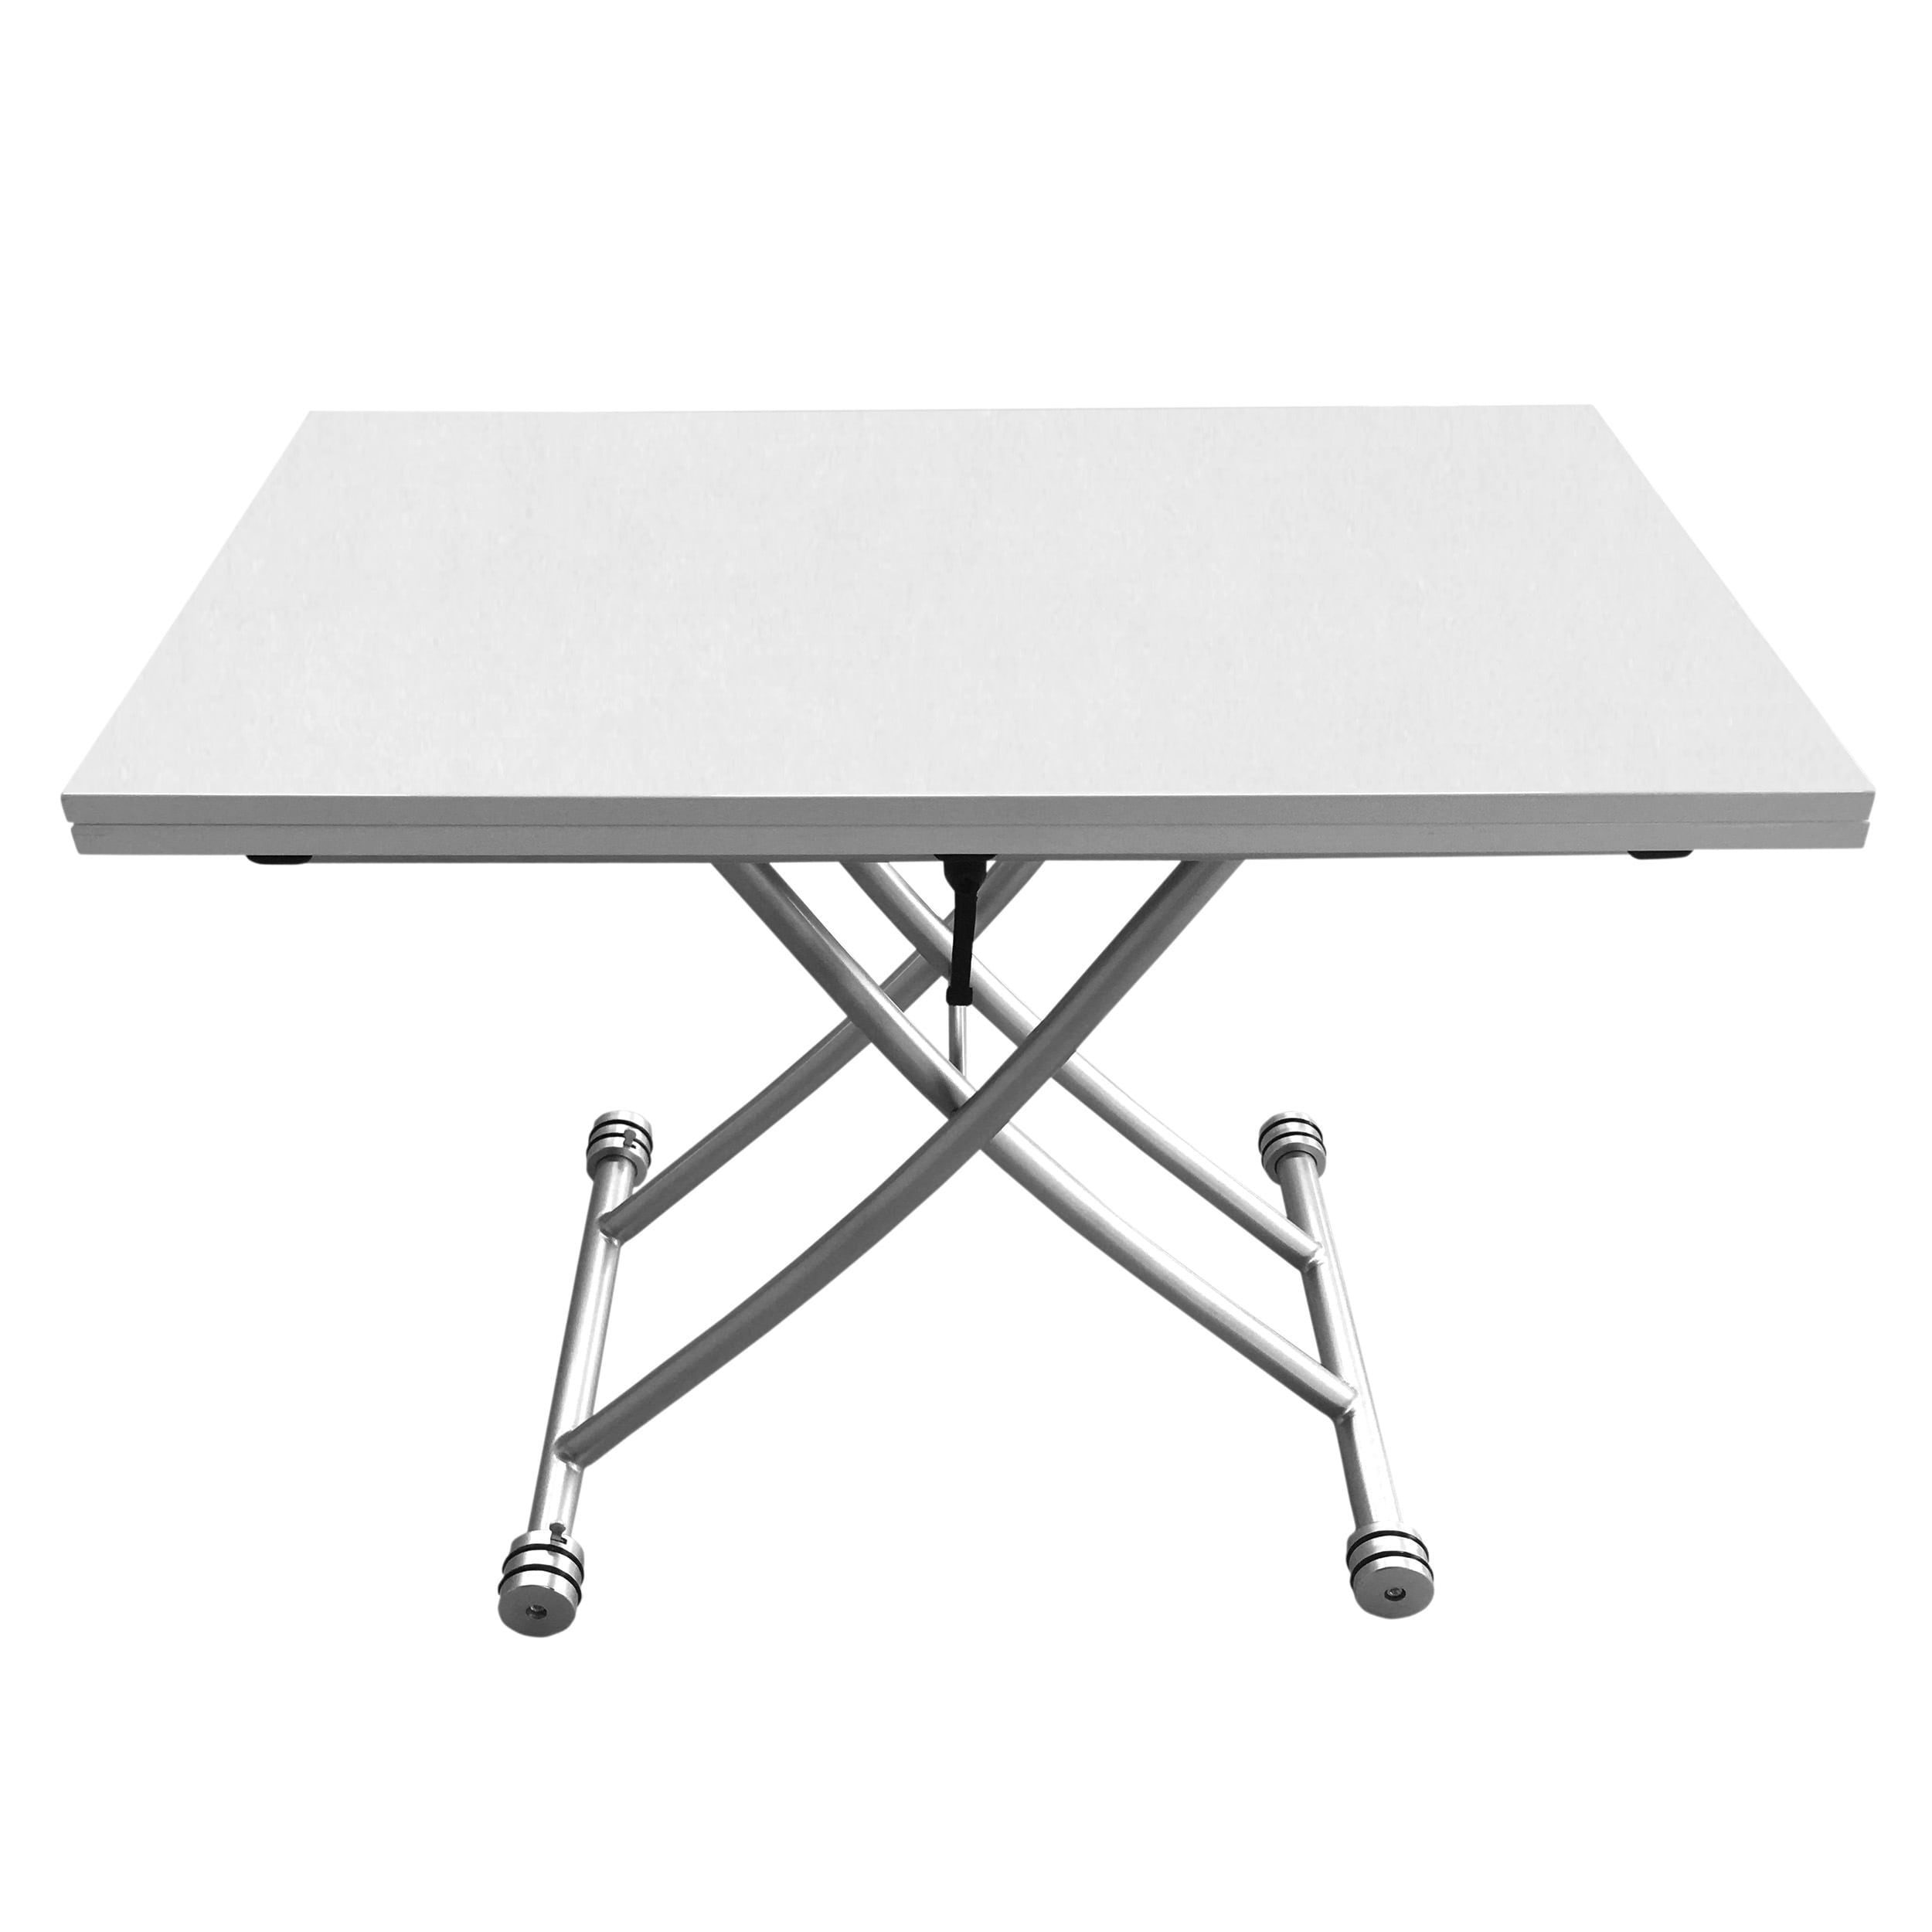 Transforming X Coffee And Dining Table In High Gloss White Finish Free Shipping Today 14356661